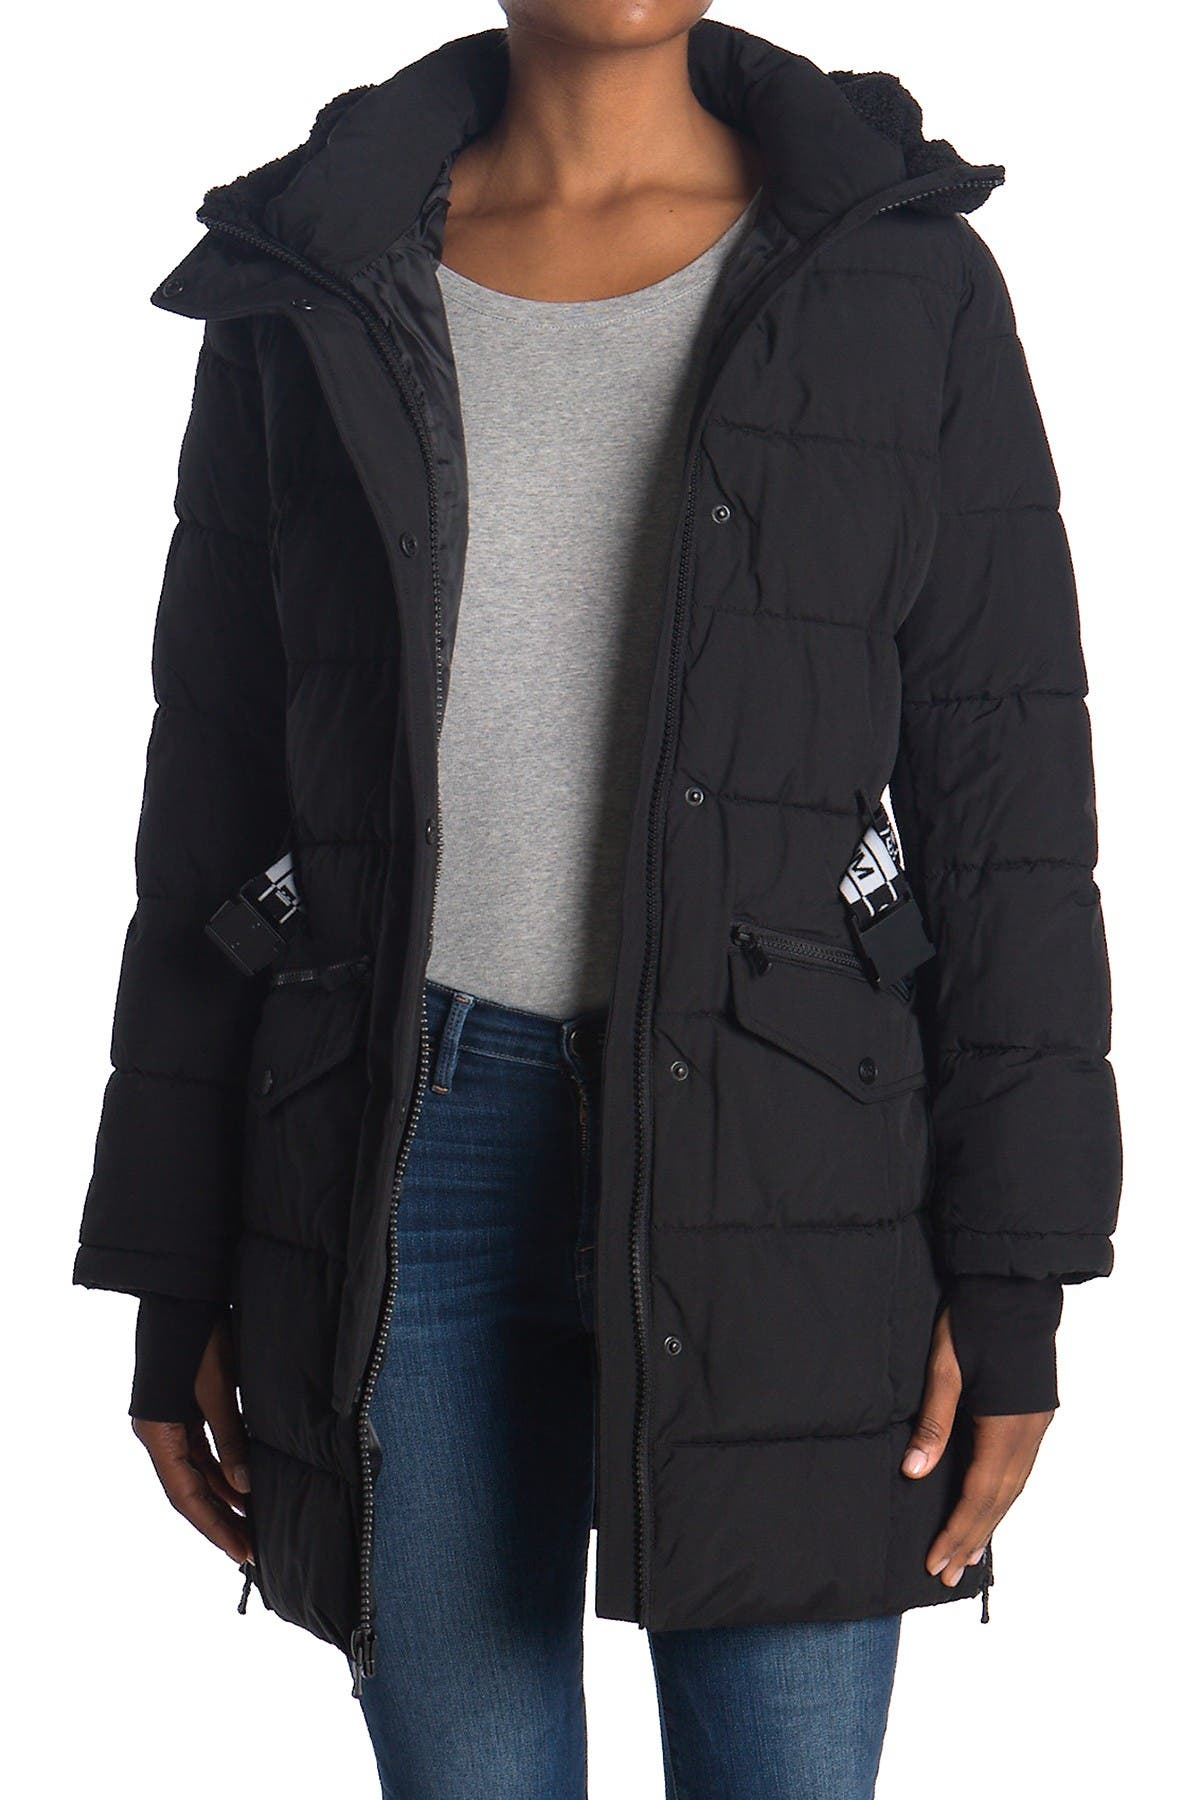 Image of Michael Kors Belted Parka With Shearling Hood